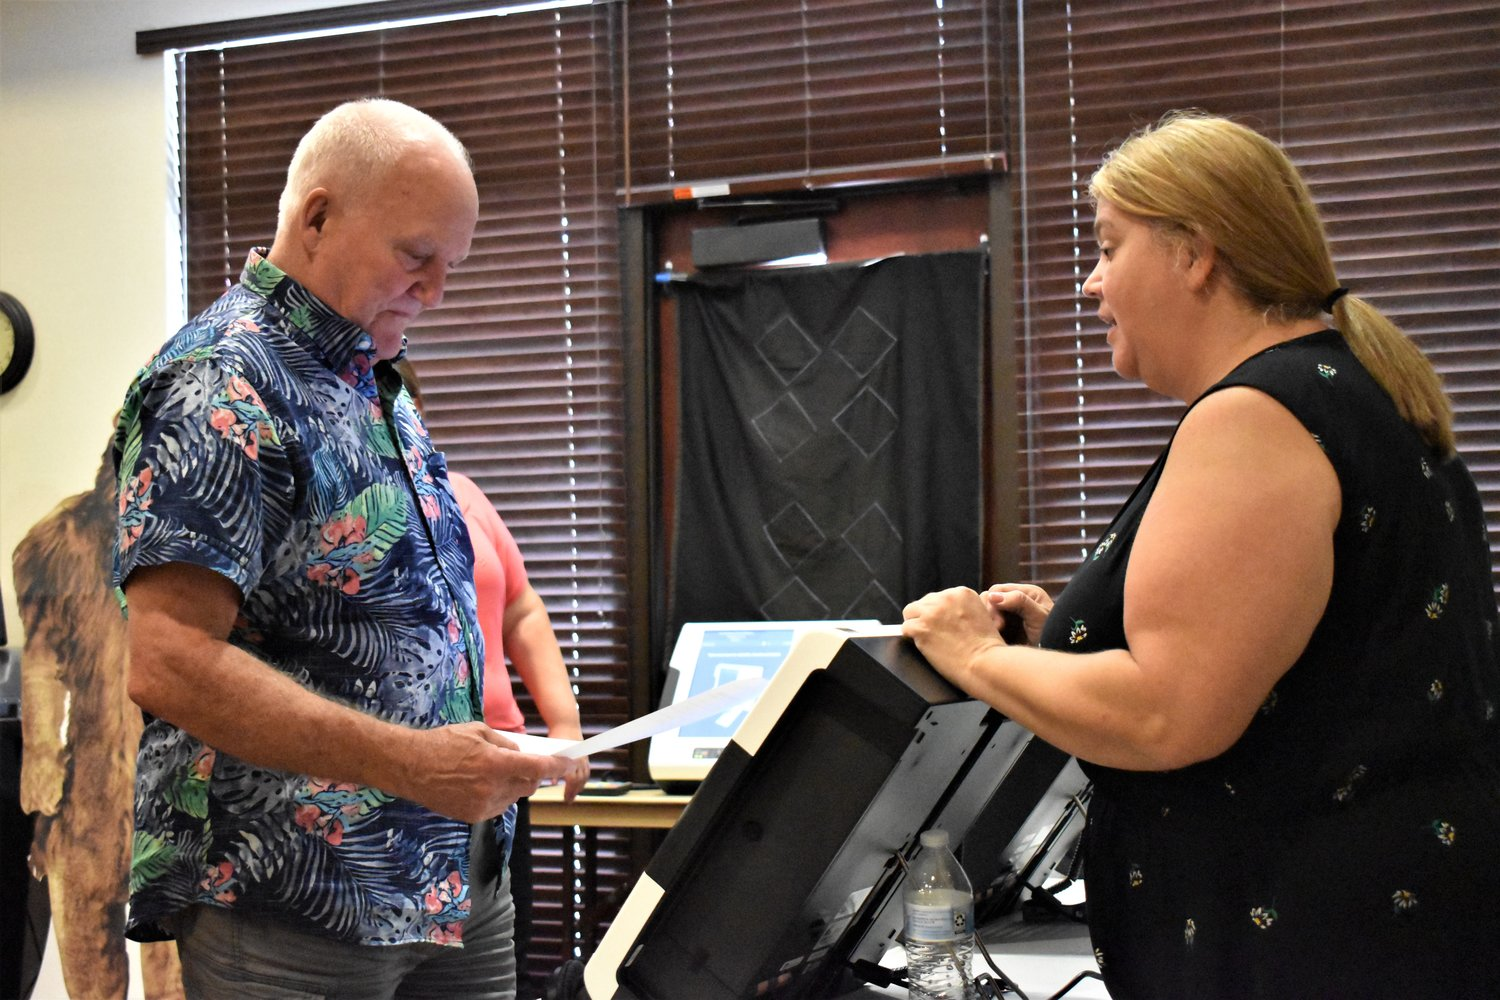 Joe Reedholm, who lost a race for the District 4 Georgetown City Council seat against  Steve Fought in May this year, tries out new voting machines purchased by Williamson County.